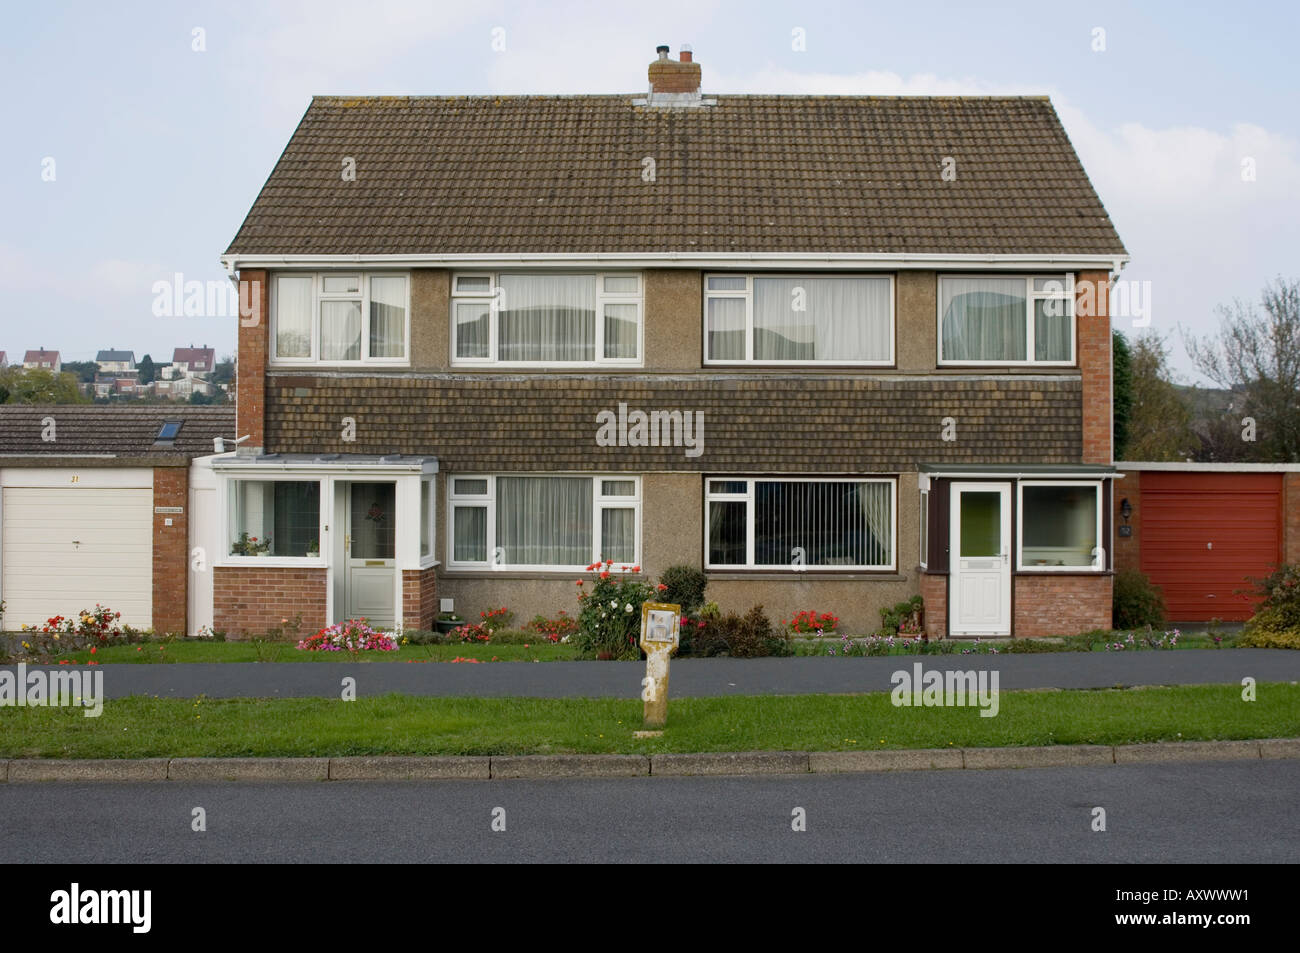 1960s House Stock Photos & 1960s House Stock Images - Alamy